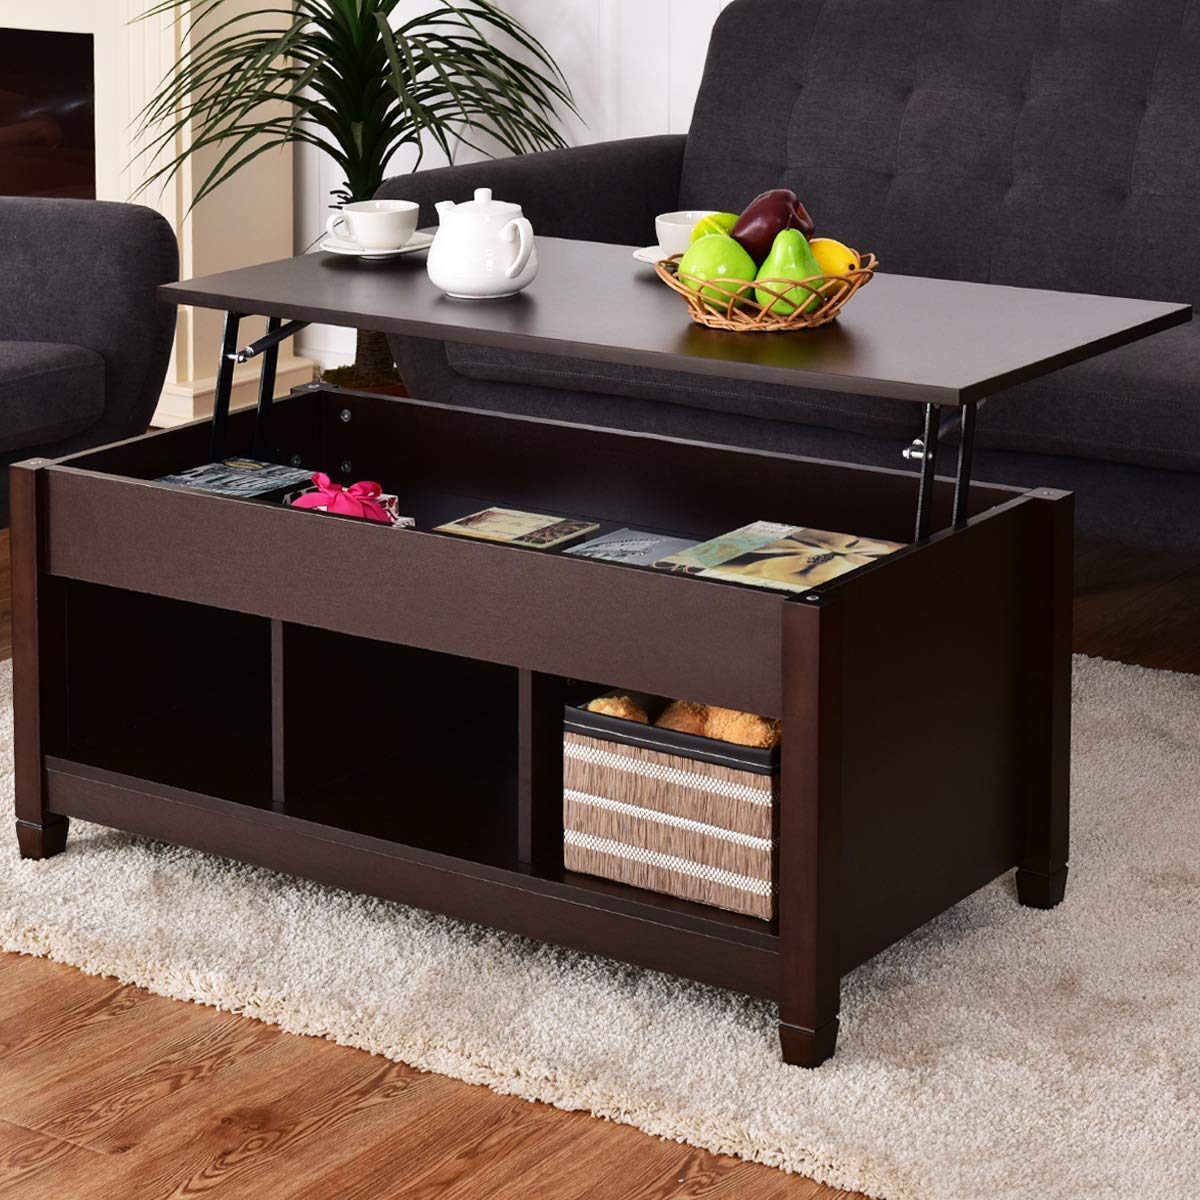 Espresso Coffee Table With Storage: NEW MODERN COFFEE TABLE LIFT TOP END TABLE STORAGE